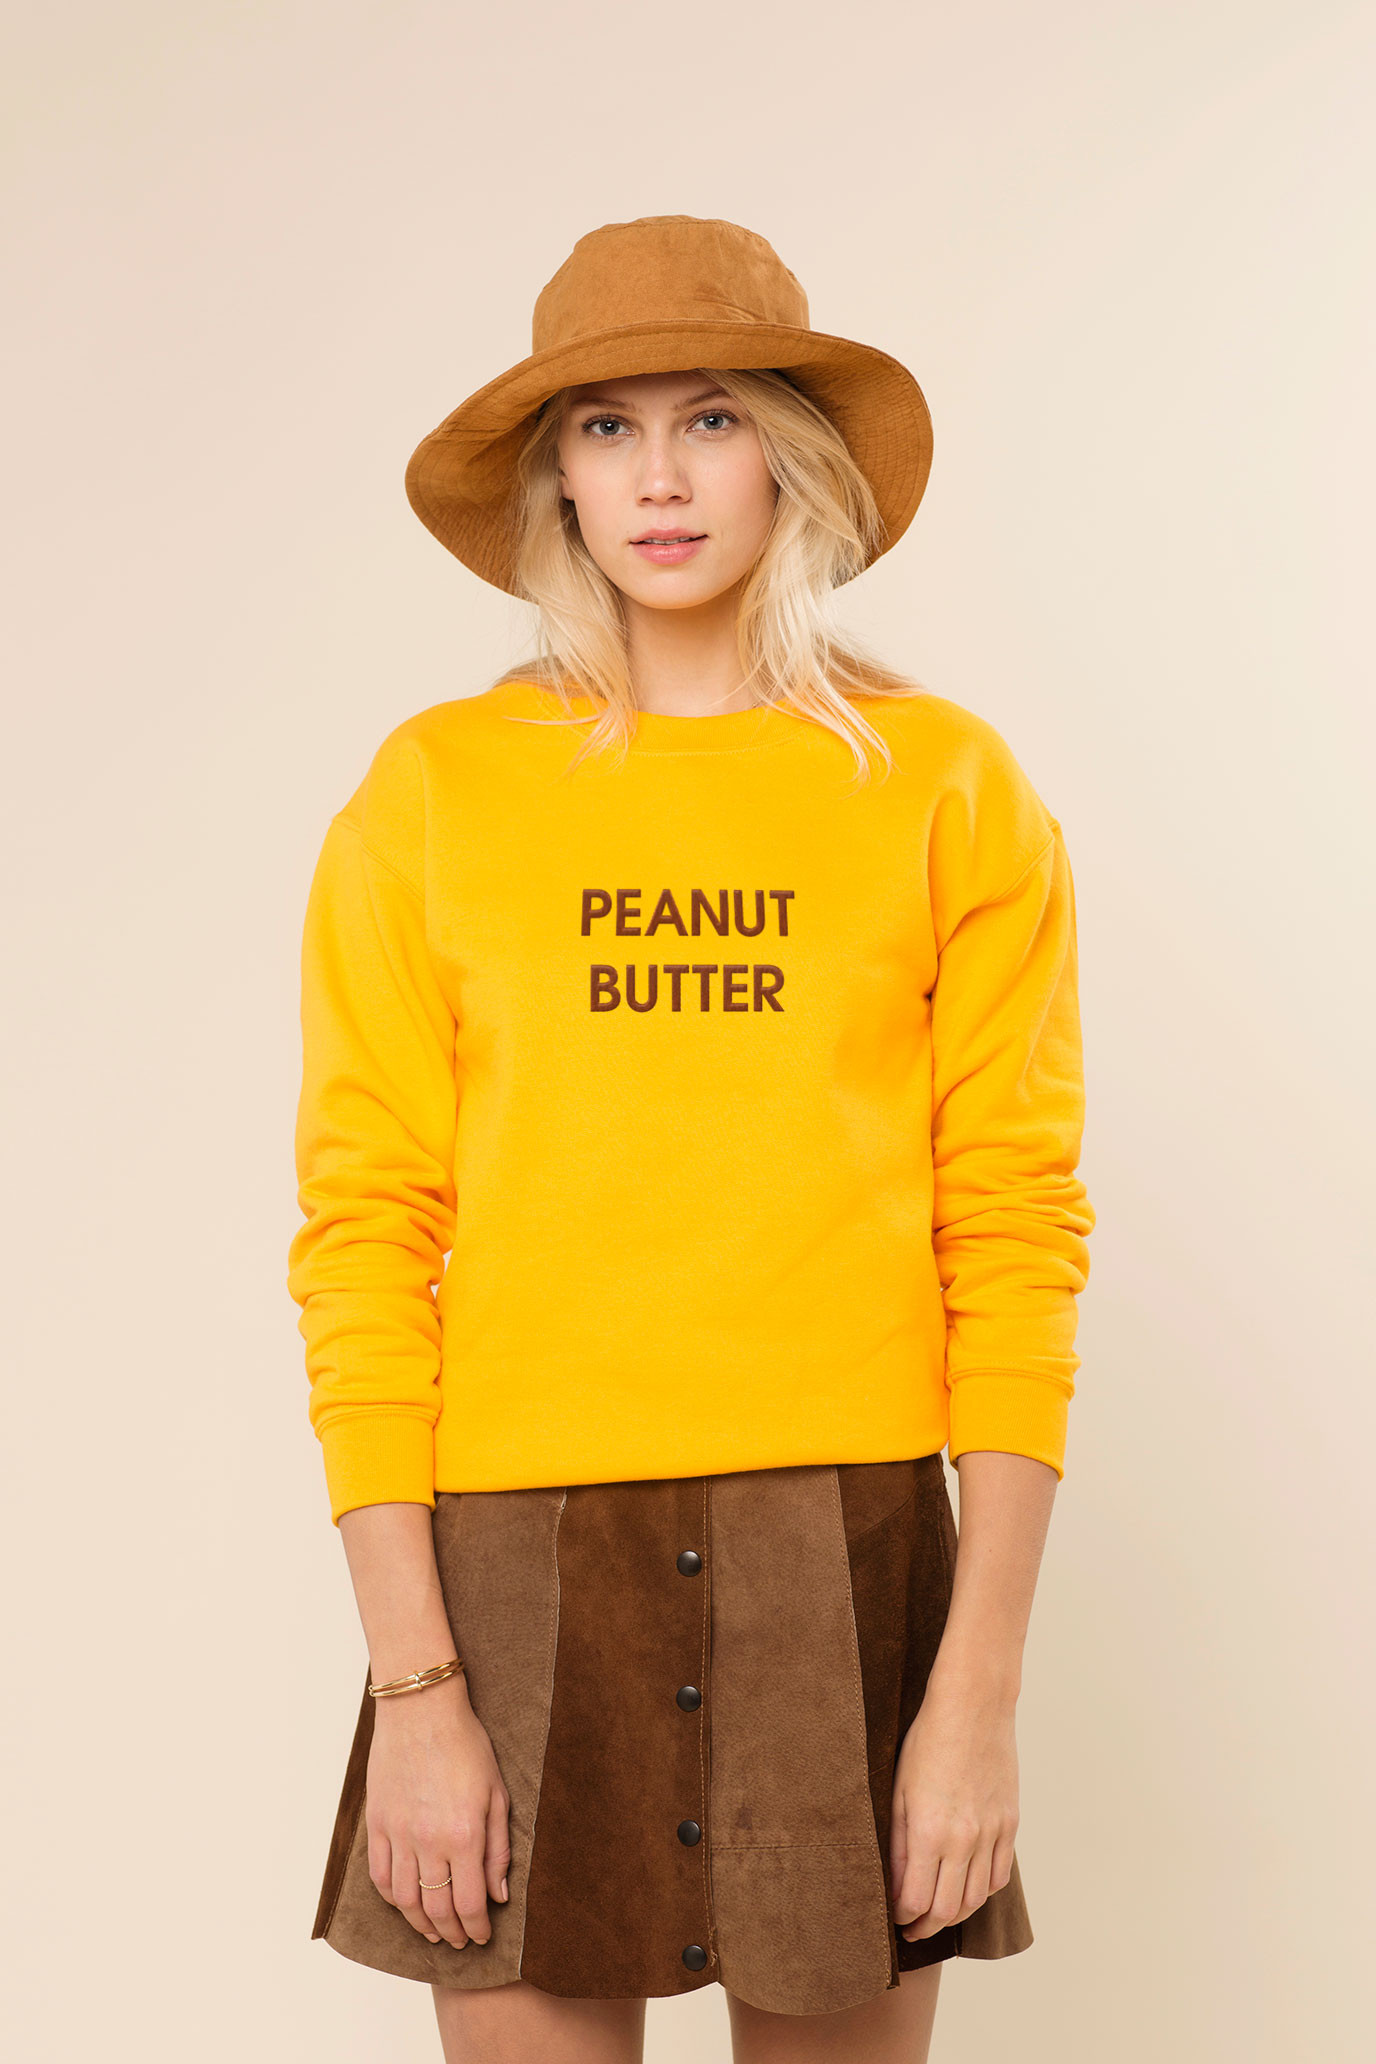 Rad peanut butter embroidered sweater throwback everyday for Peanut butter t shirt dress